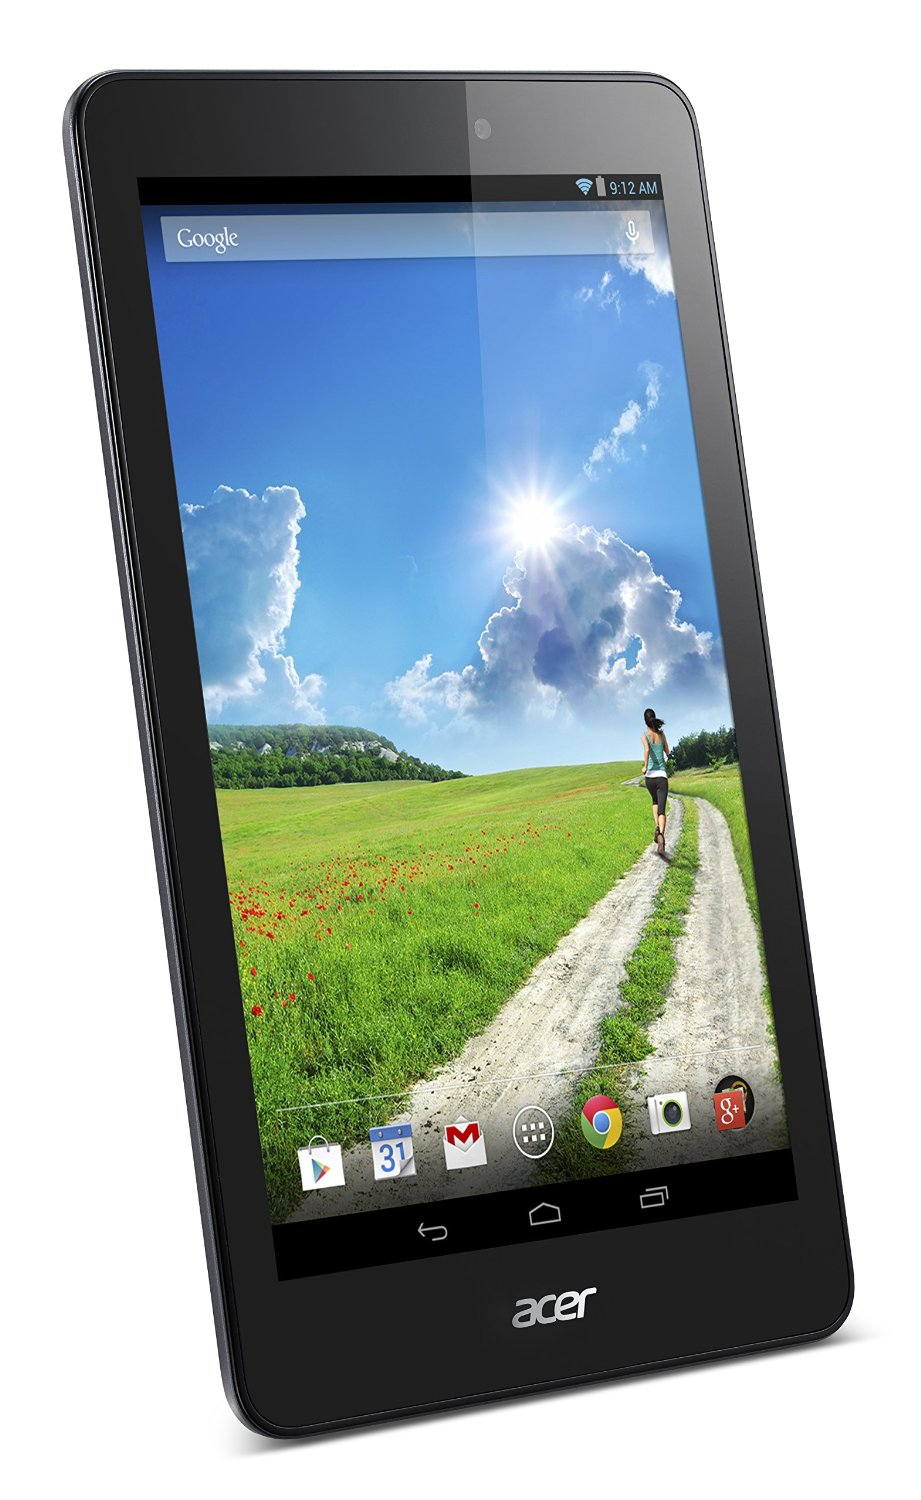 Acer Iconia One 8 (B1-810) Taking Orders In The US For $129